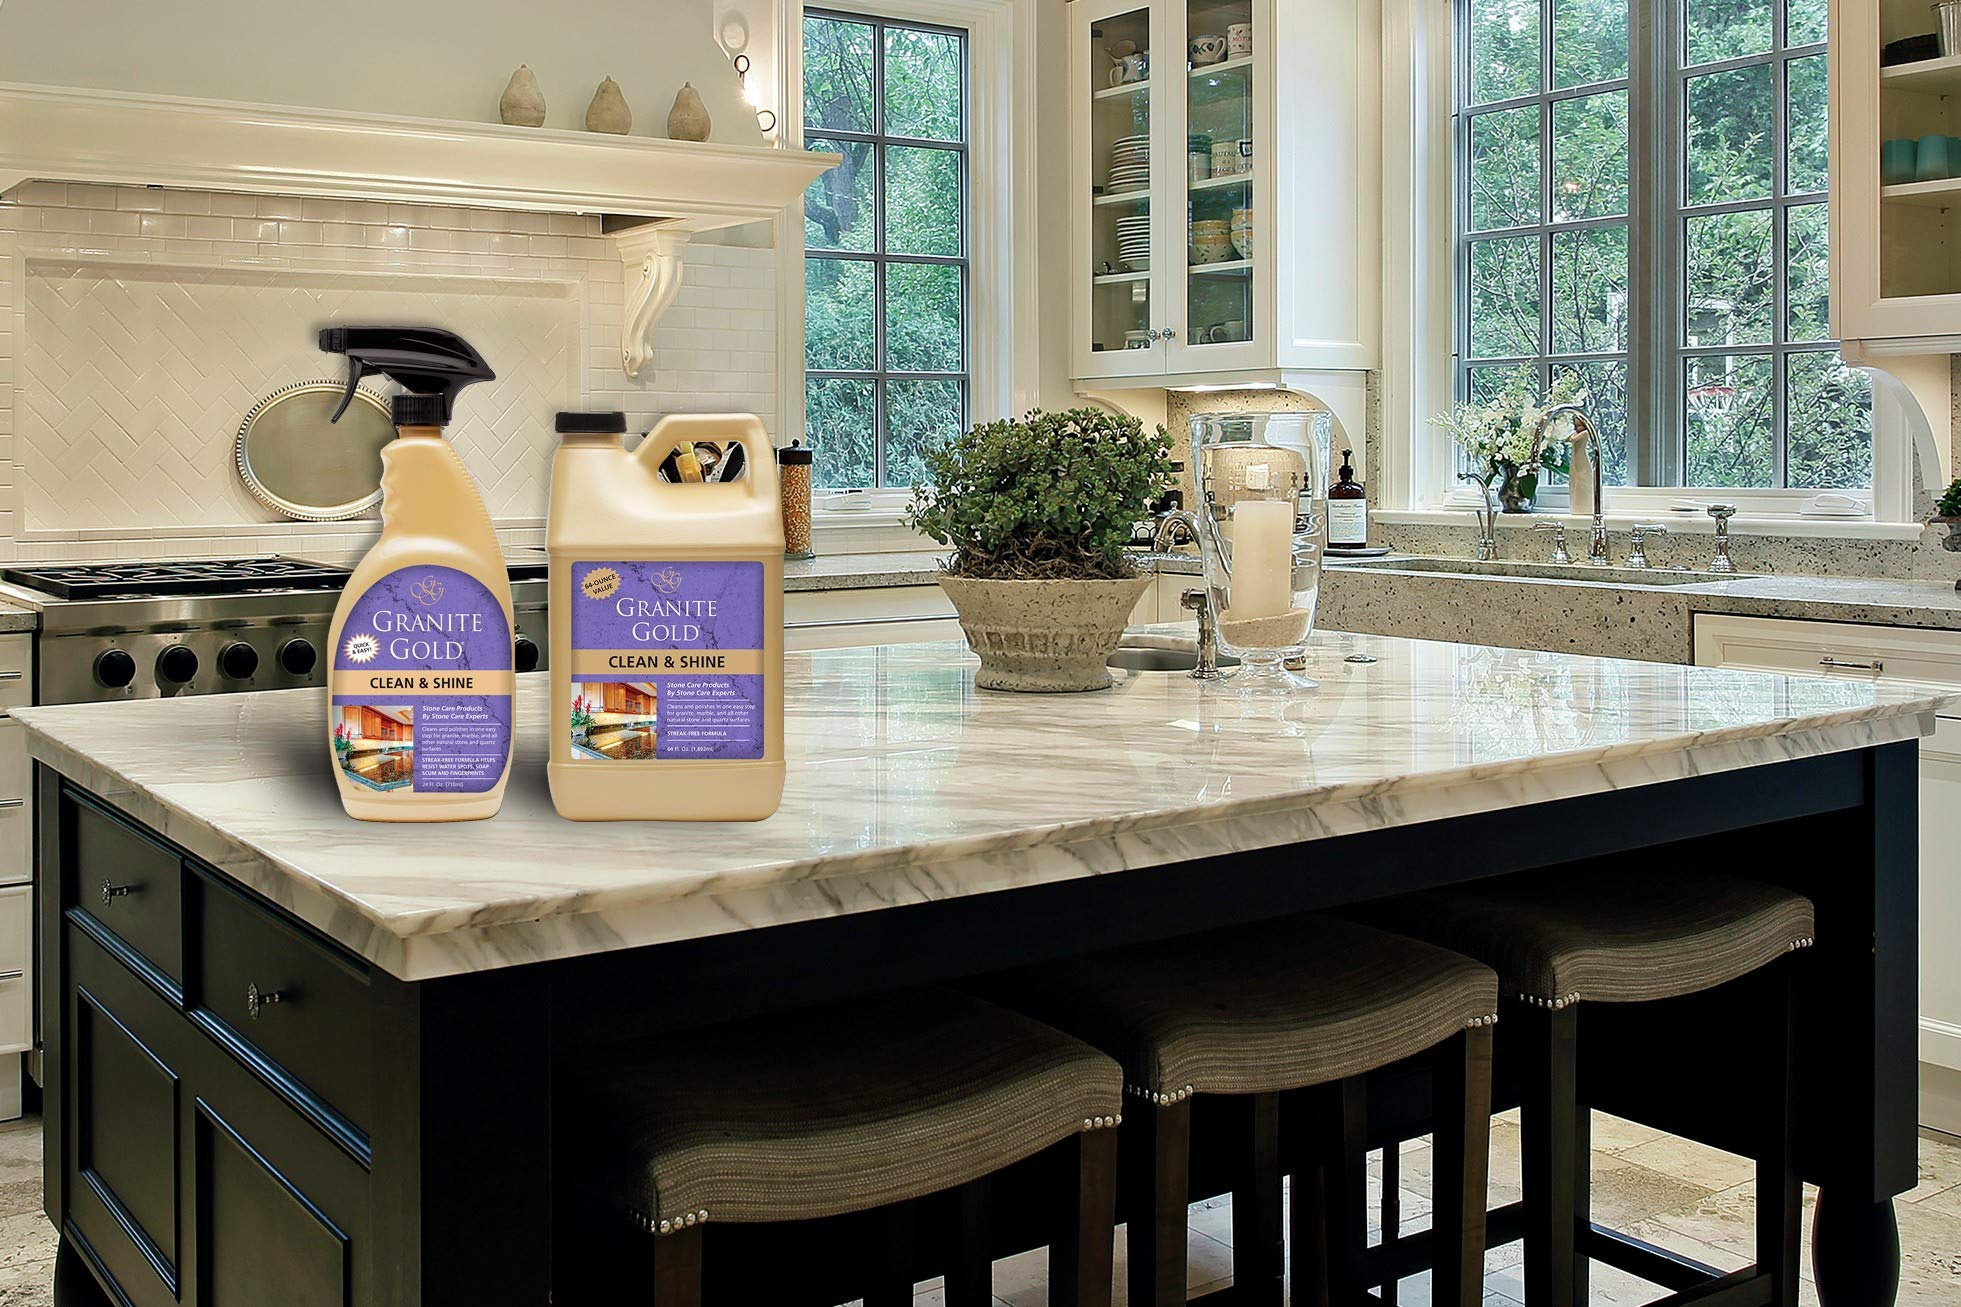 Granite Gold Clean and Shine Spray and Refill Value Pack - Polishes and Deep Cleans Natural Stone Surfaces, Made in The USA by Granite Gold (Image #4)